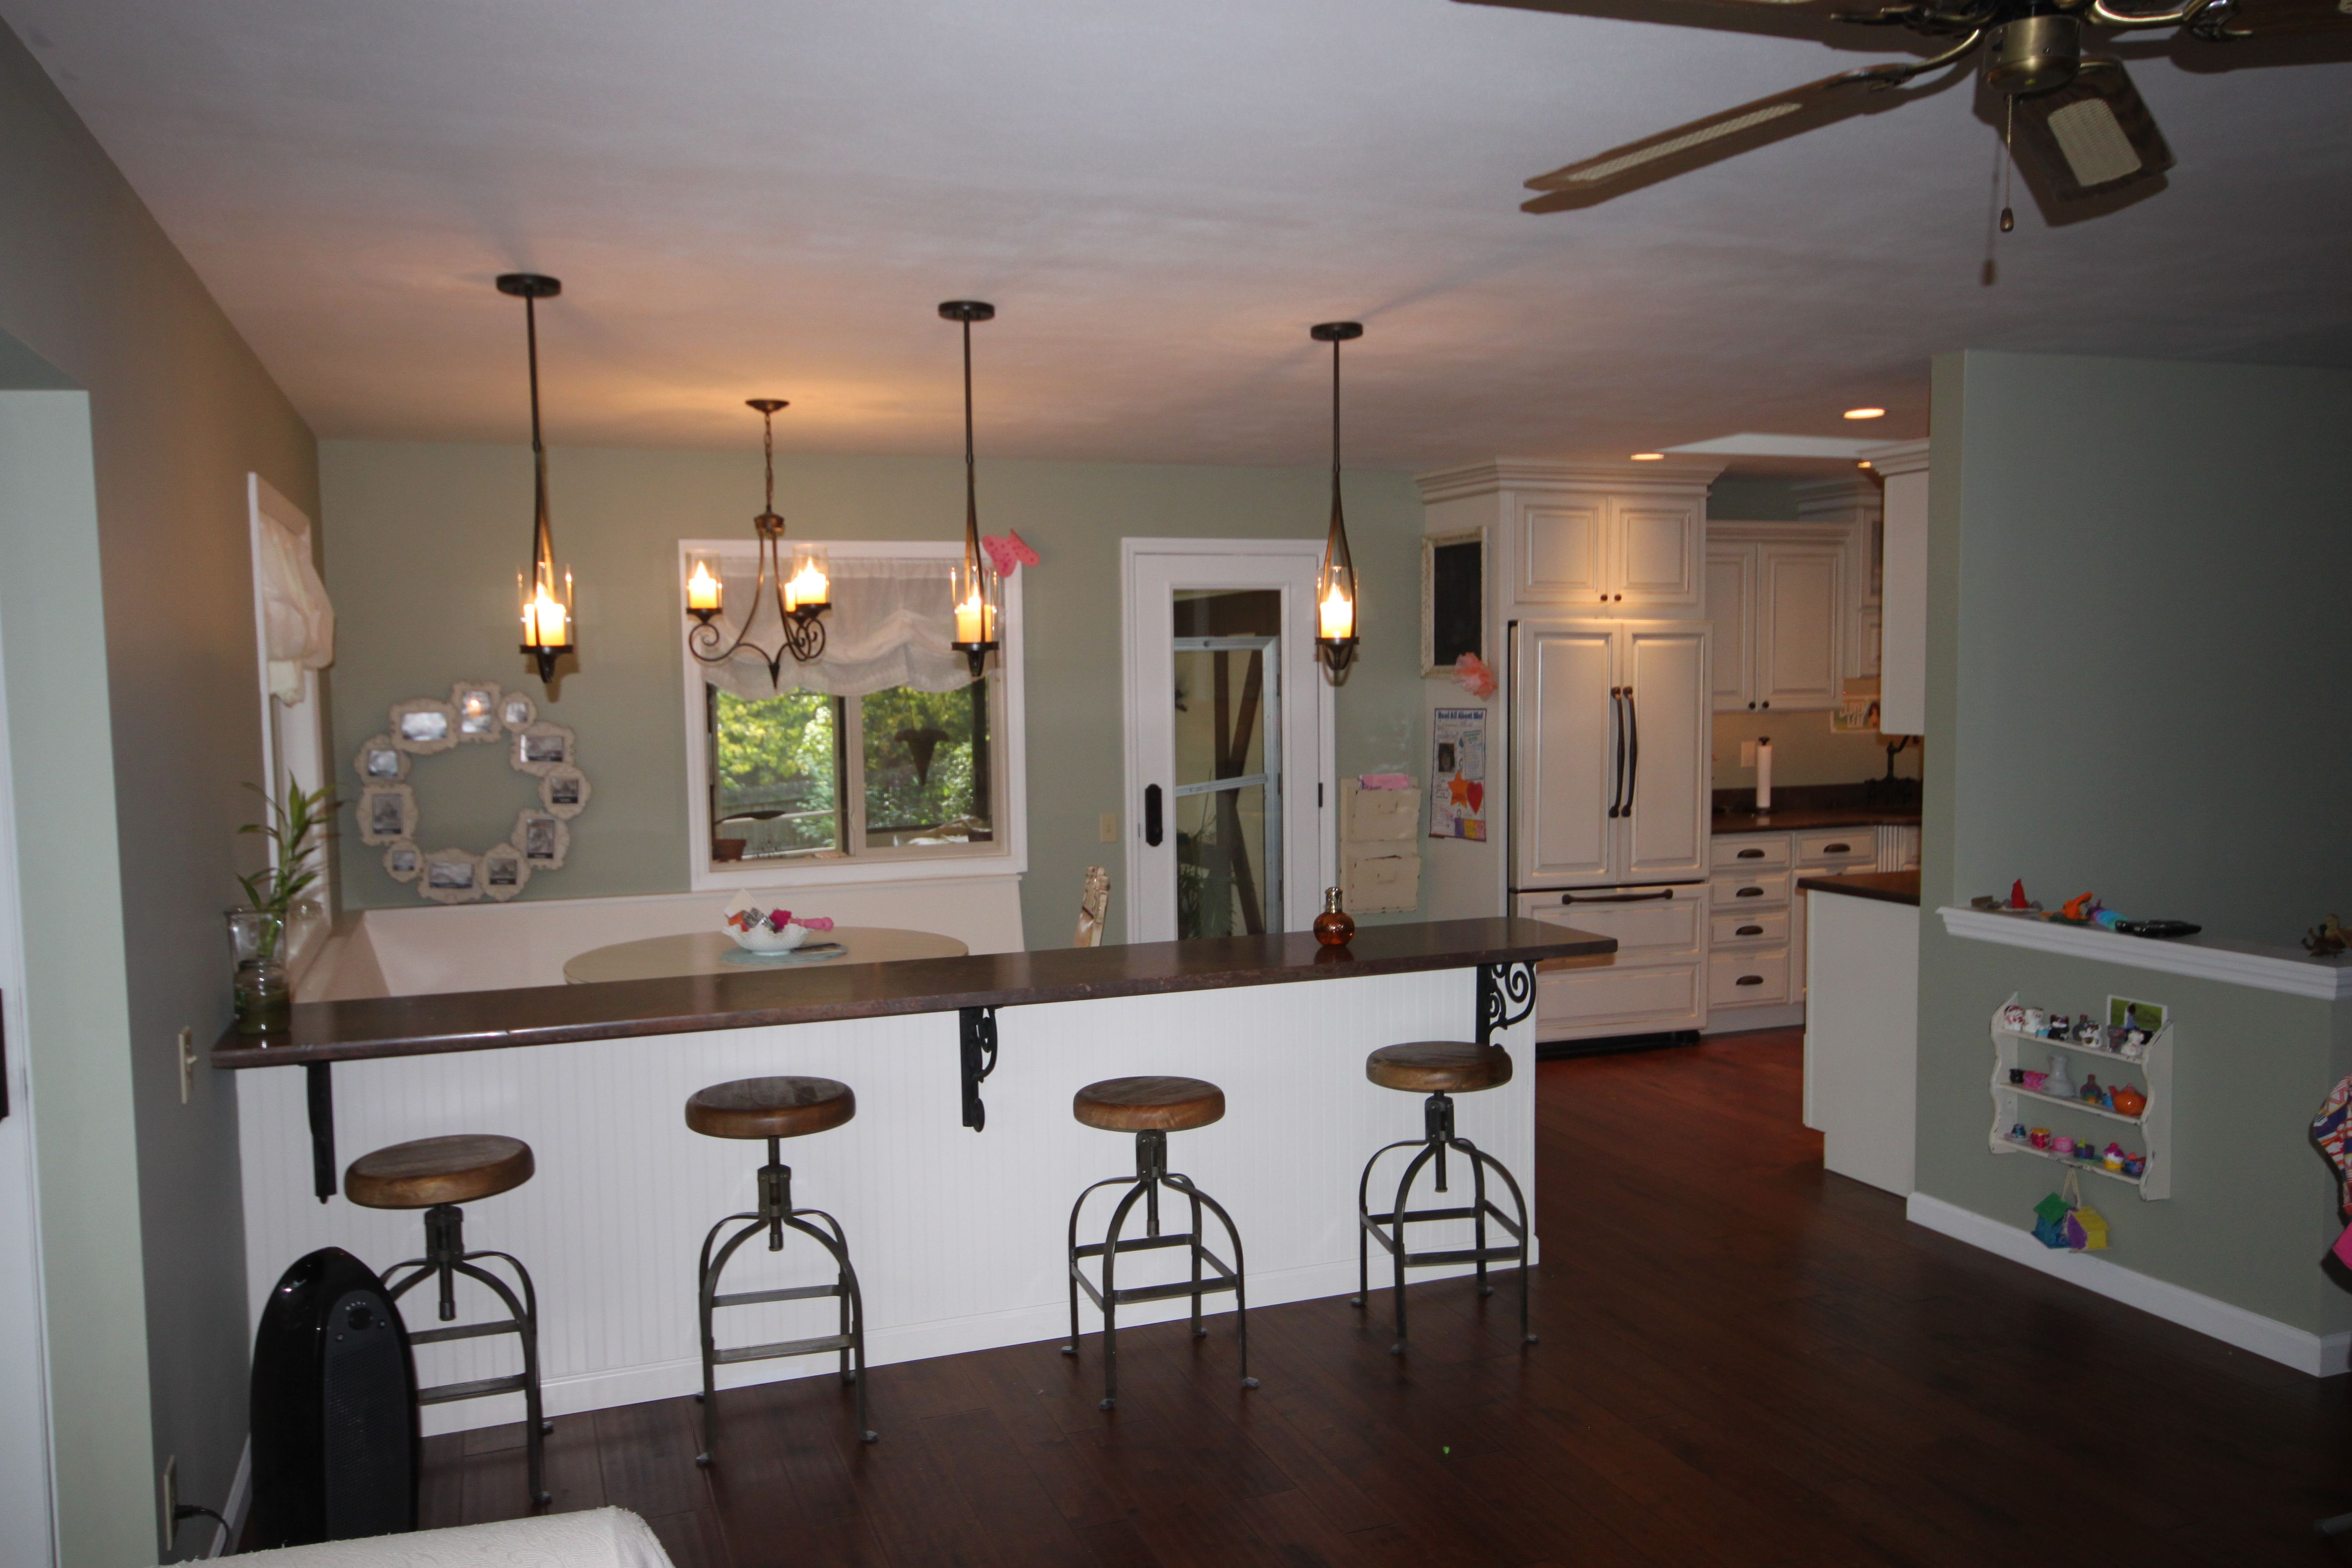 Liston construction company kitchen remodel